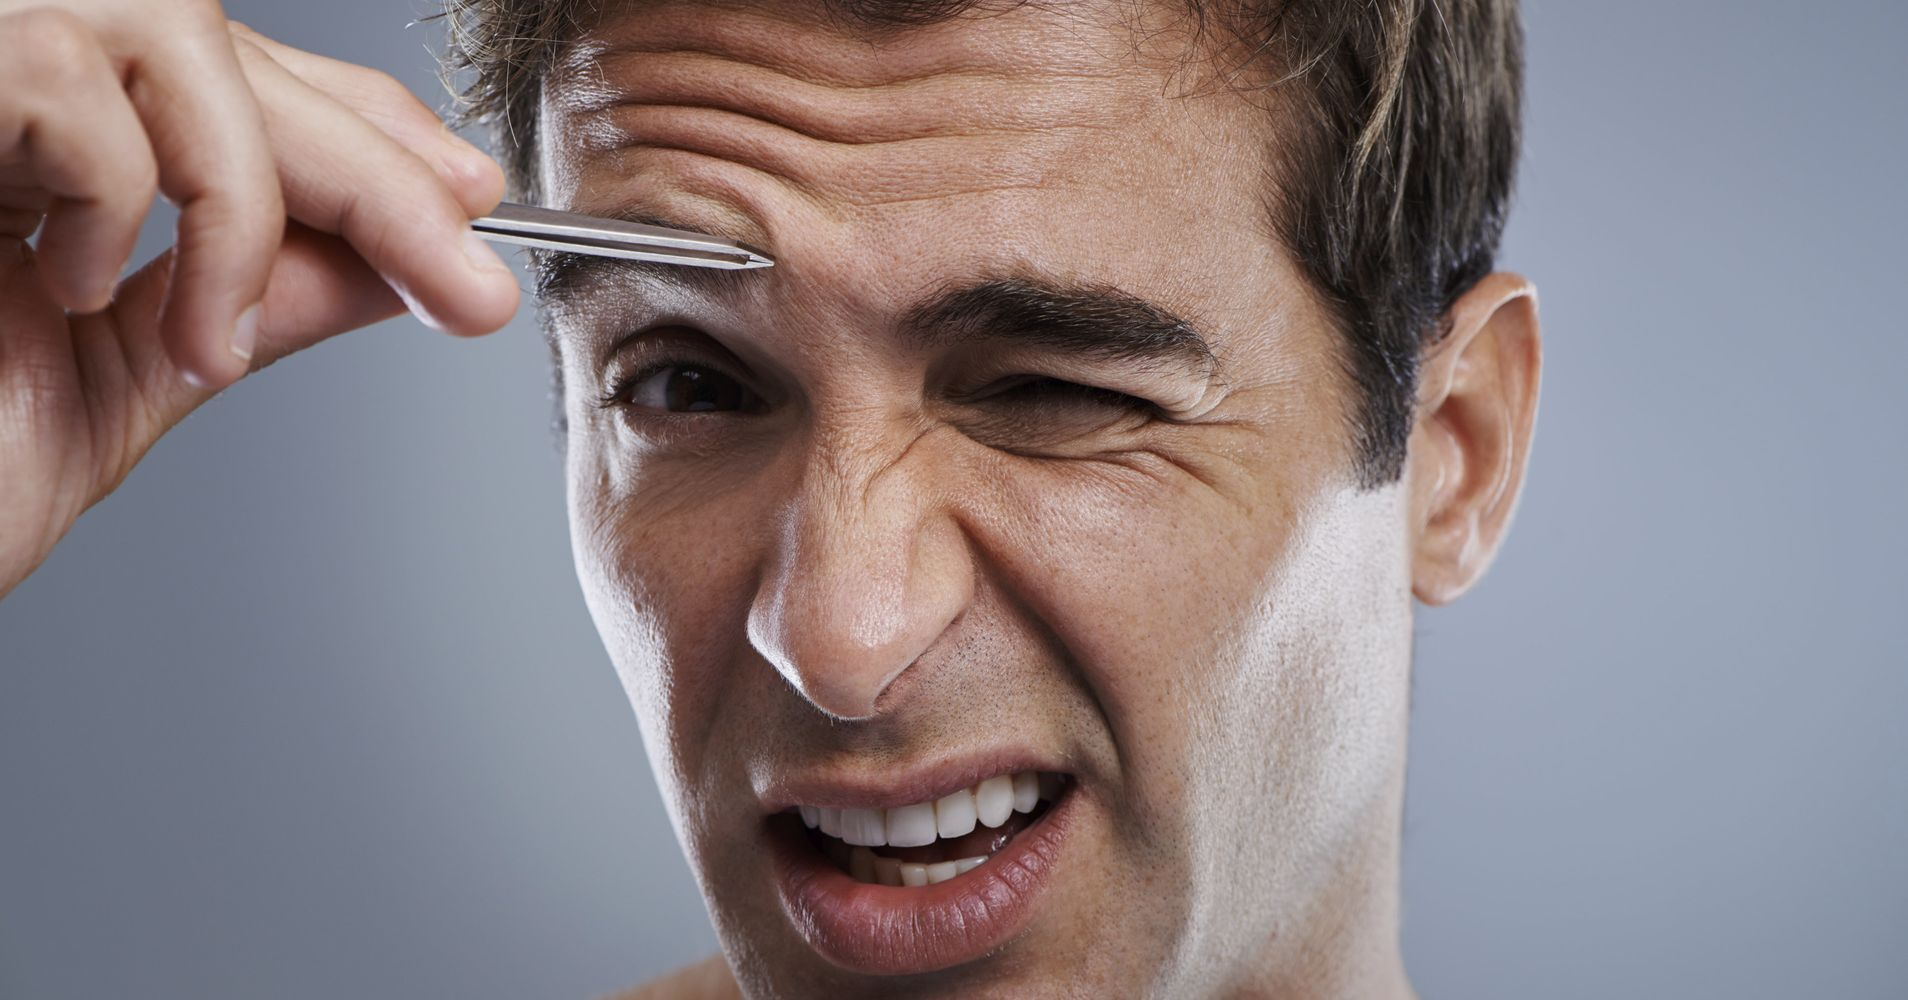 A Mens Eyebrow Grooming Guide In 6 Easy Steps Huffpost Life